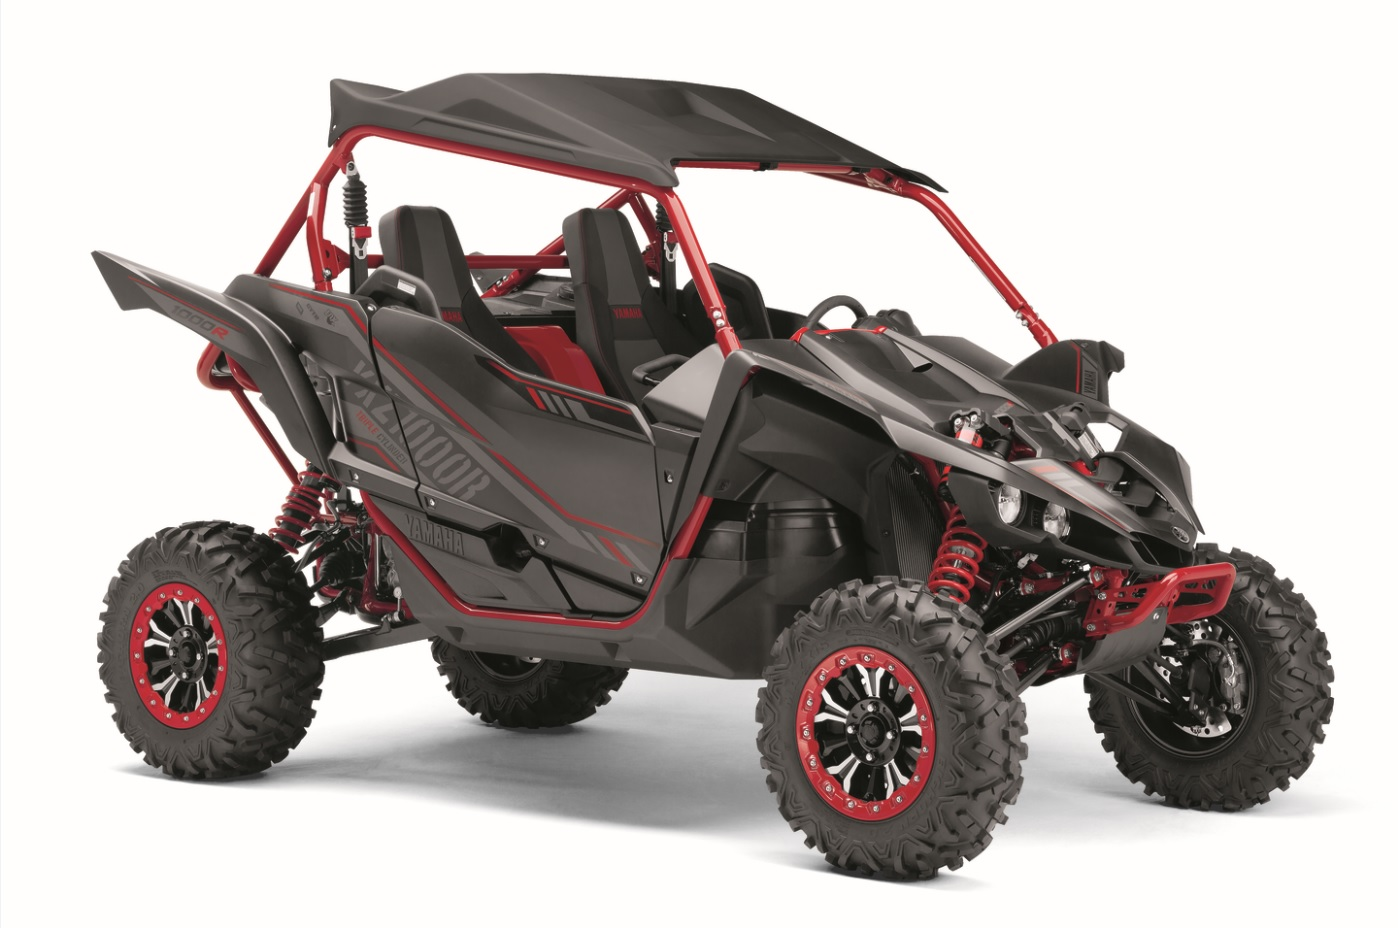 2017 yamaha yxz1000r arriving at dealers new kodiak 700 for Yamaha dealers in my area